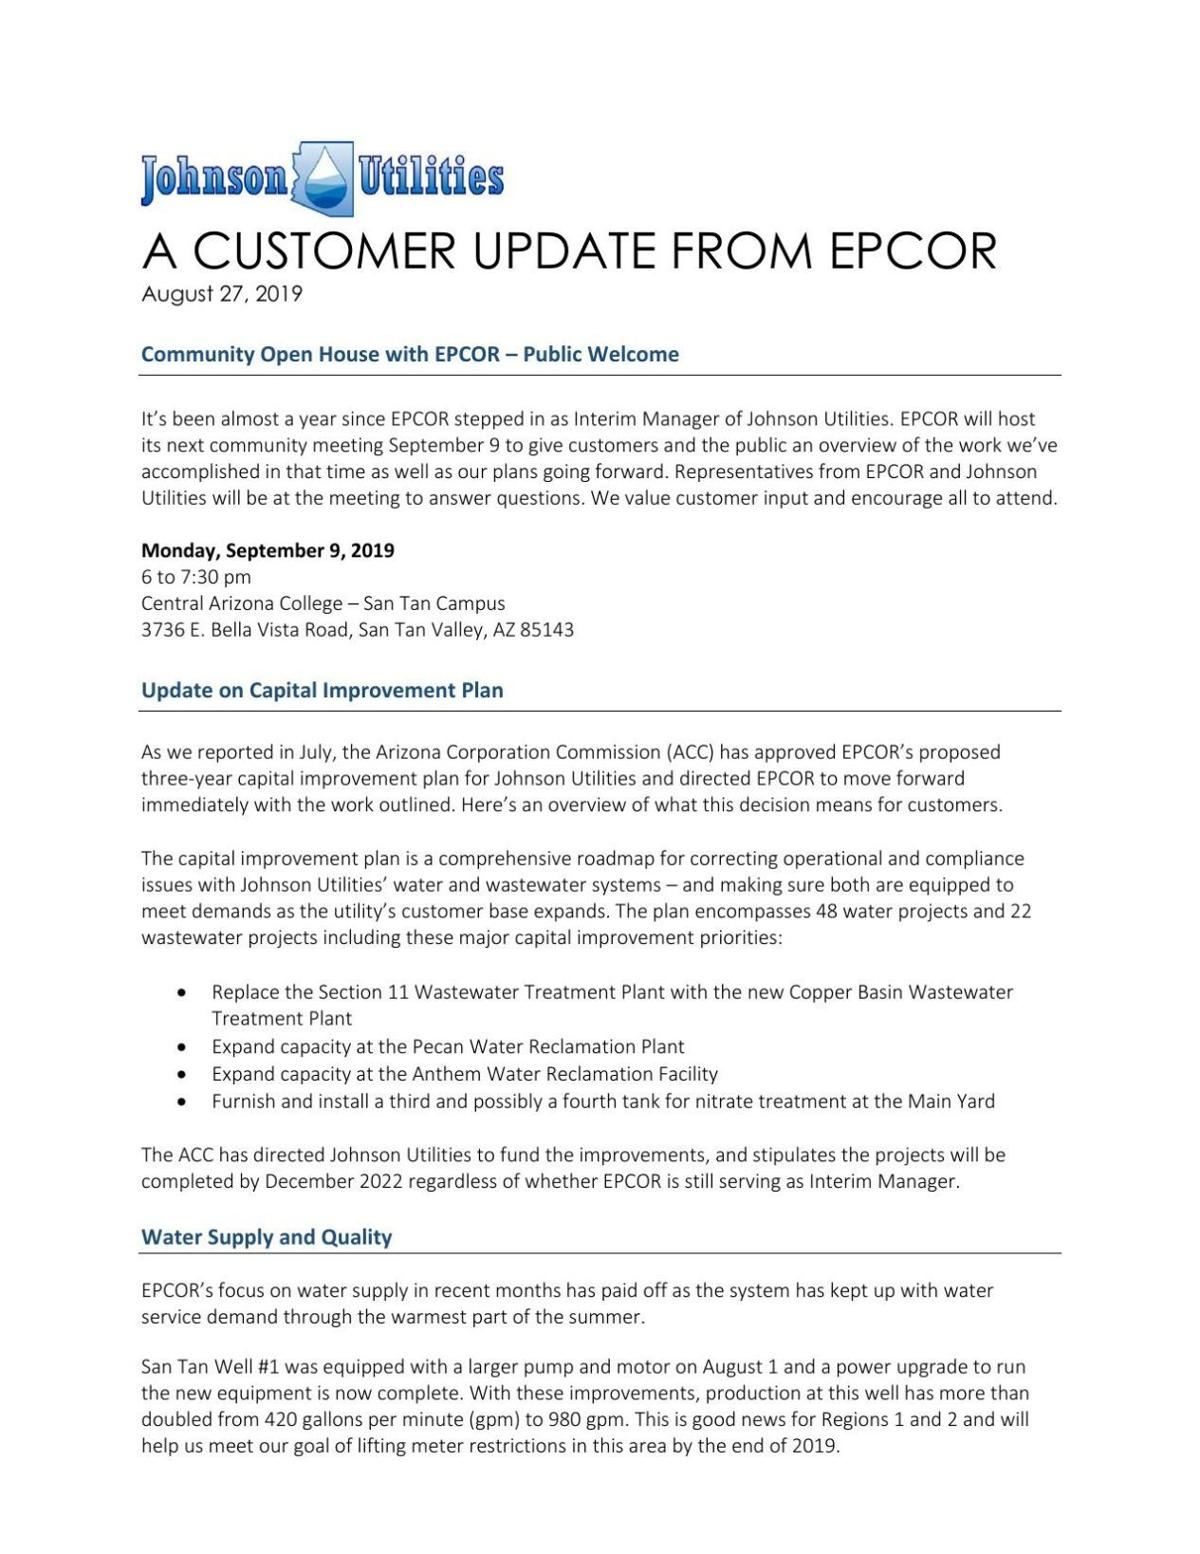 Update from EPCOR